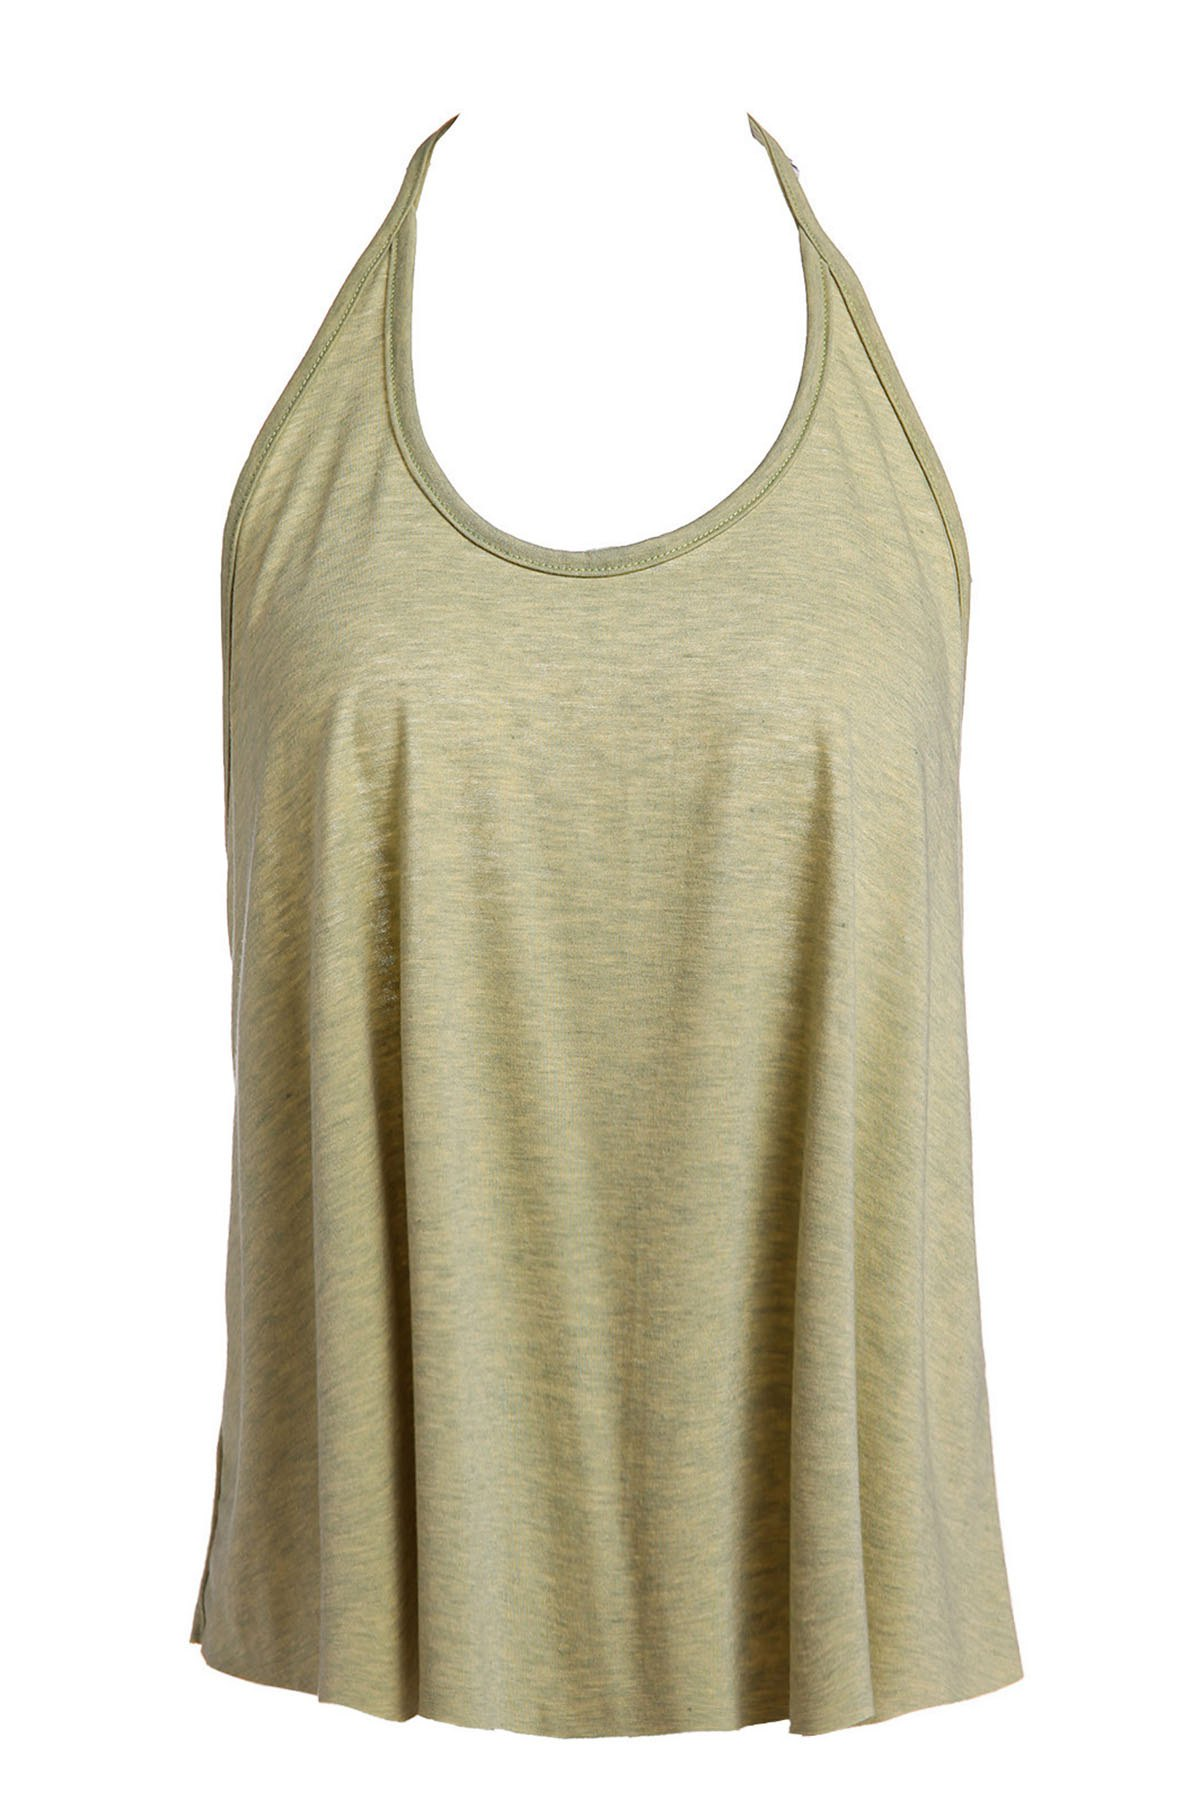 Sexy Open Back Spaghetti Strap Solid Color Women's Tank Top - OLIVE GREEN S